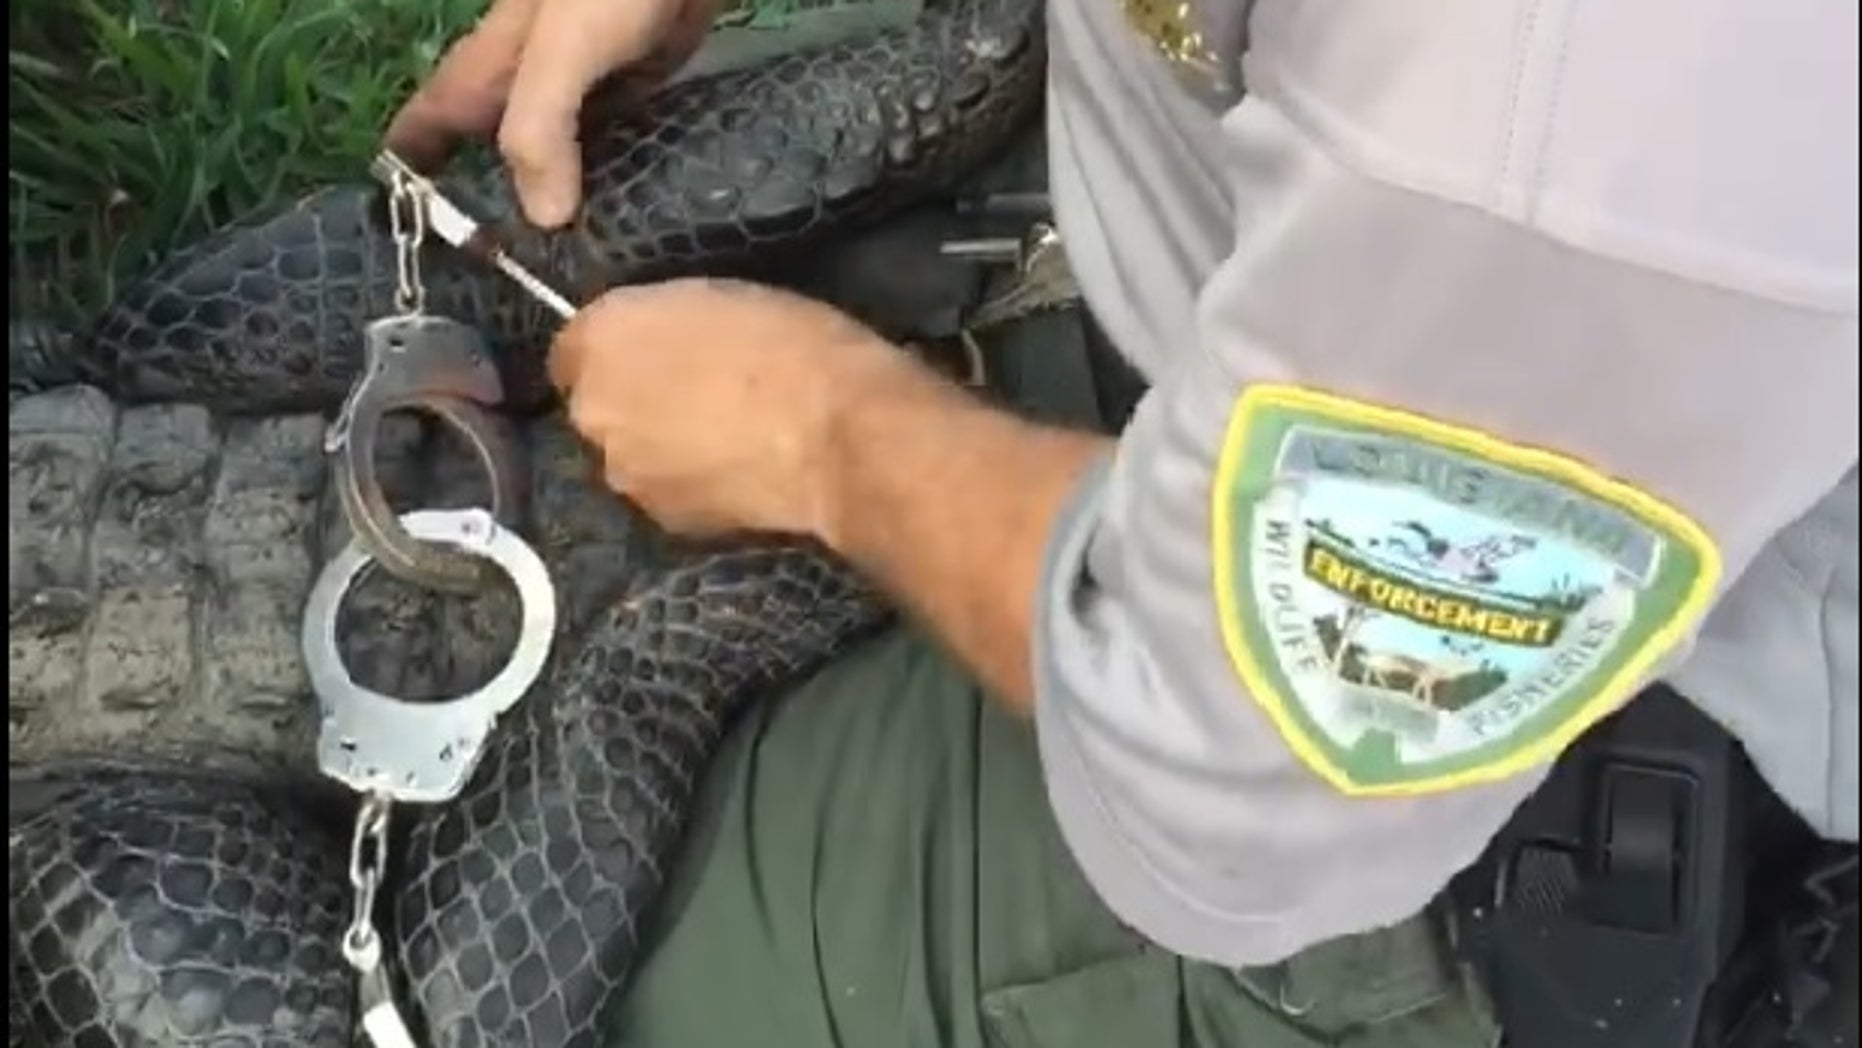 A wildlife agent handcuffs an alligator in Louisiana so it will not escape.